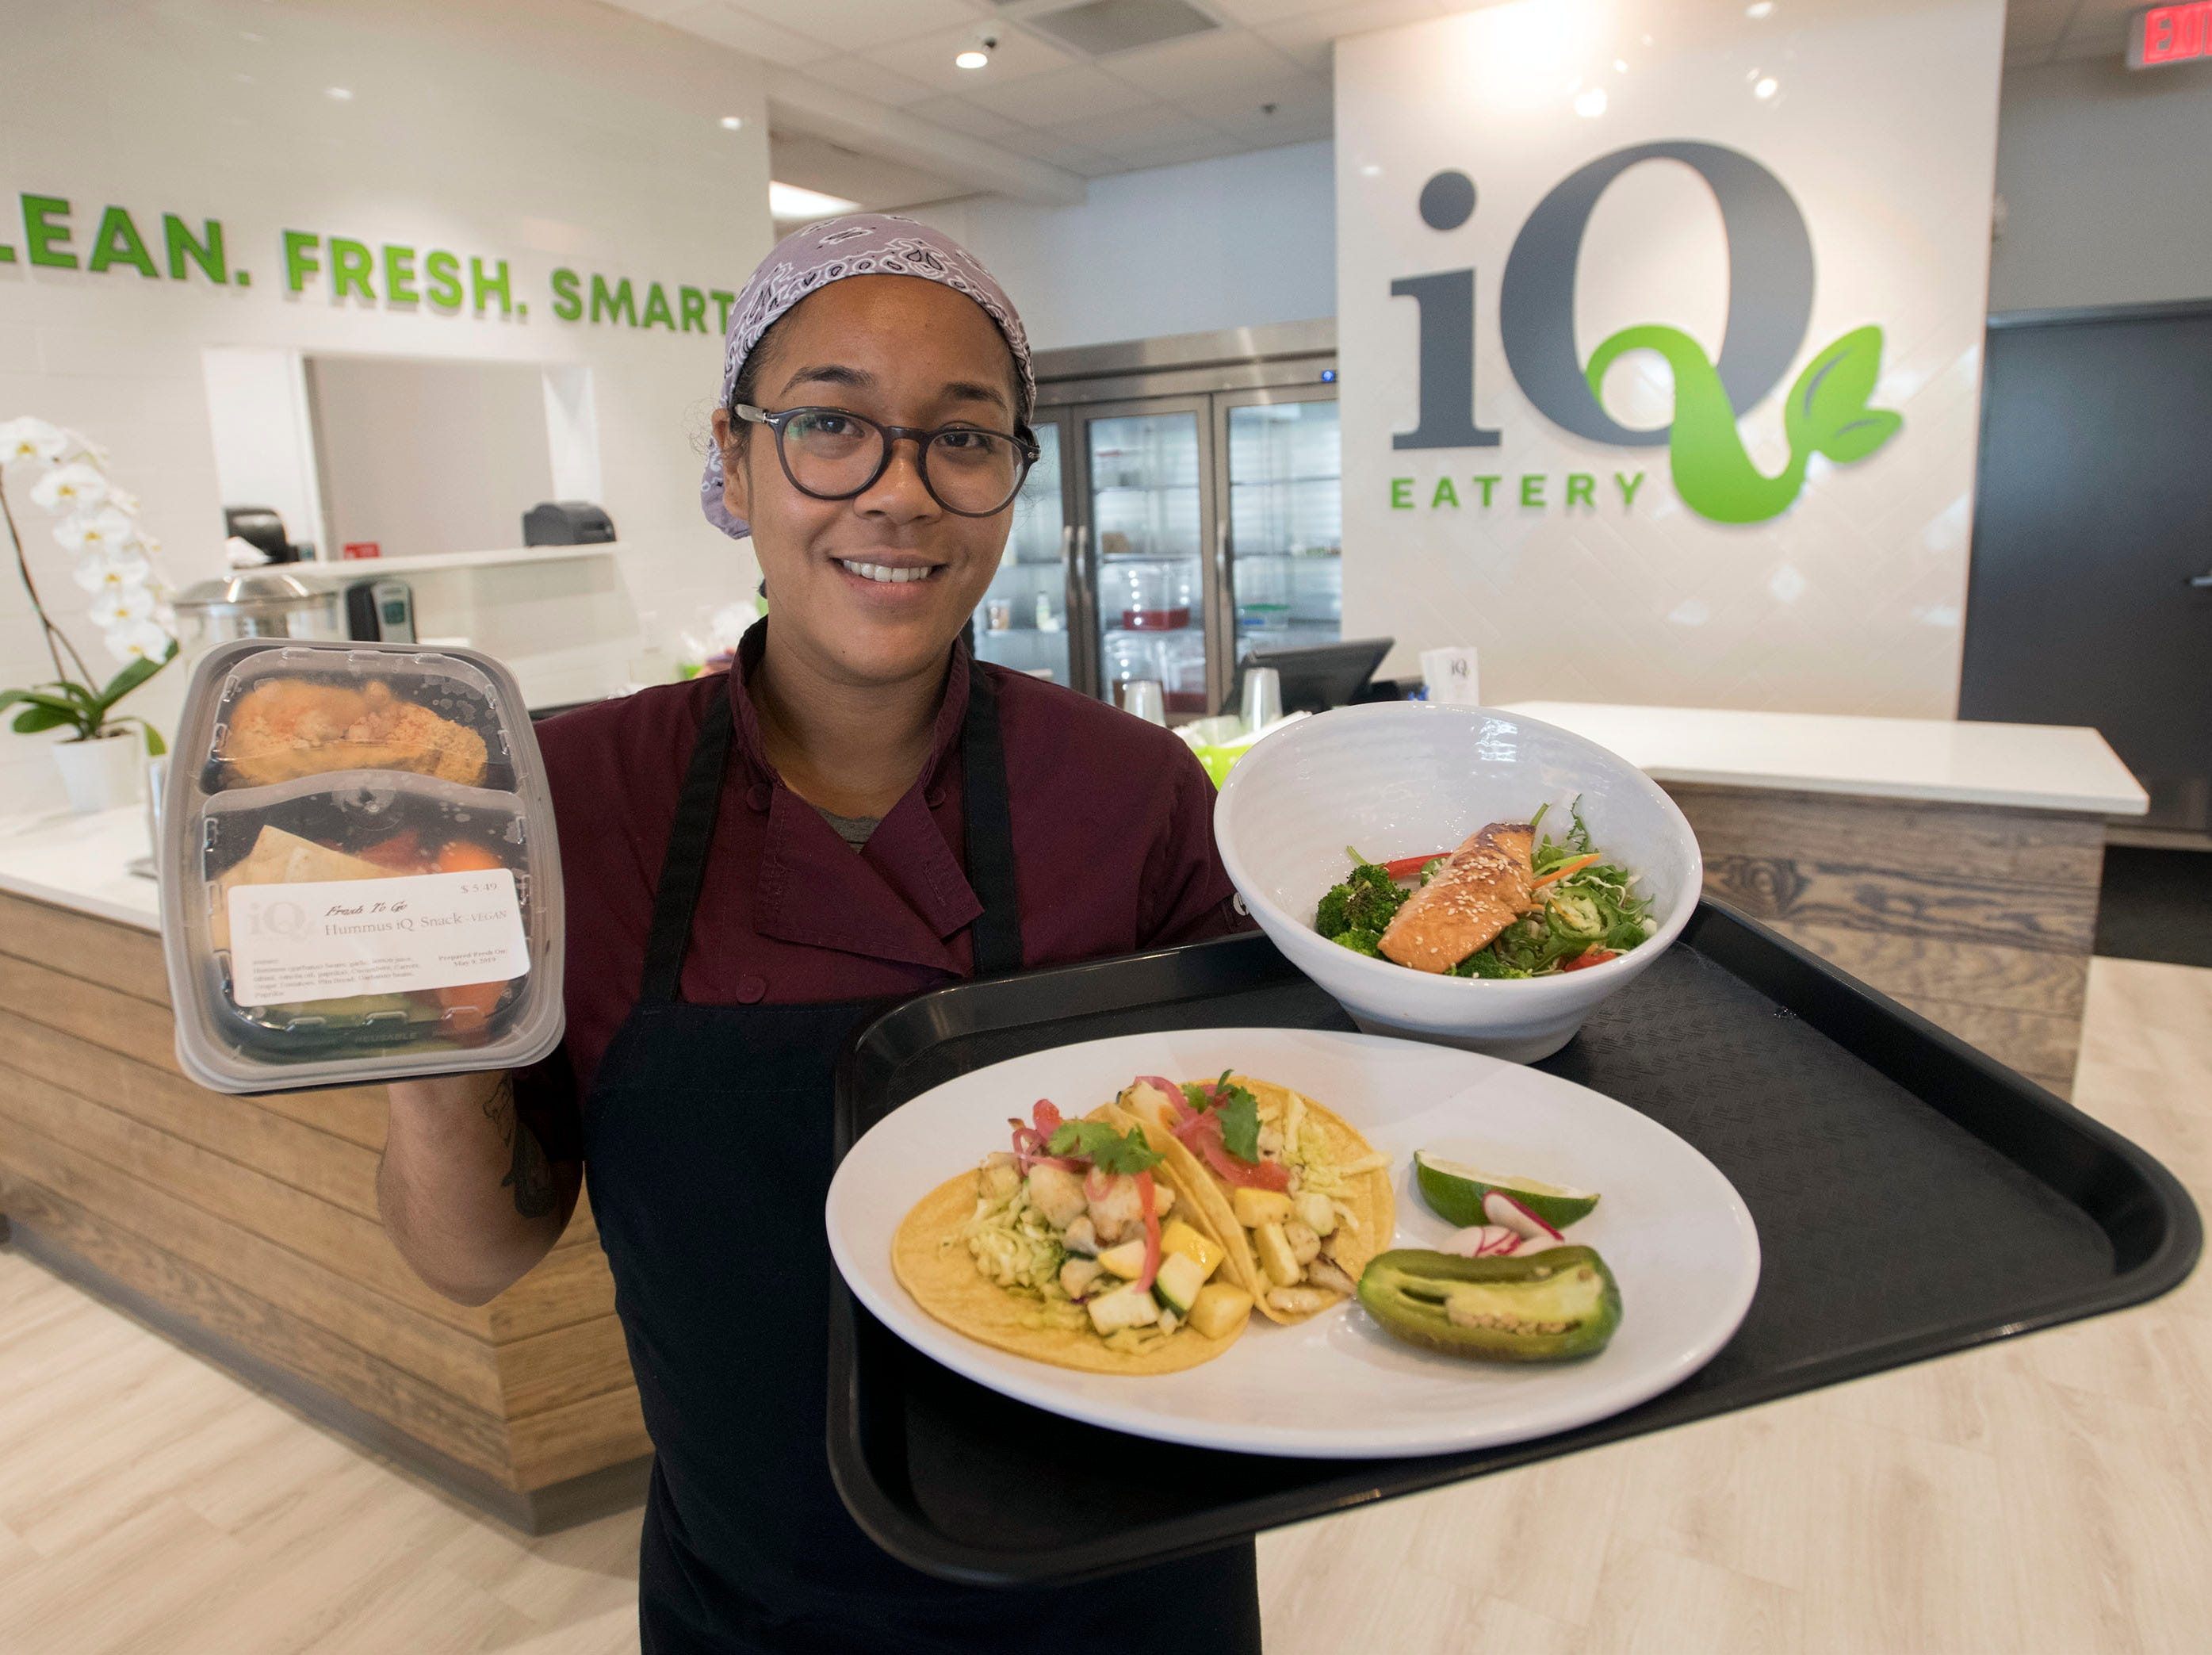 Chef Takara Hein shows off some of the made to order meals and the ready-made food options available at the new Barrancas Ave restaurant, IQ Eatery on Thursday, May 9, 2019.